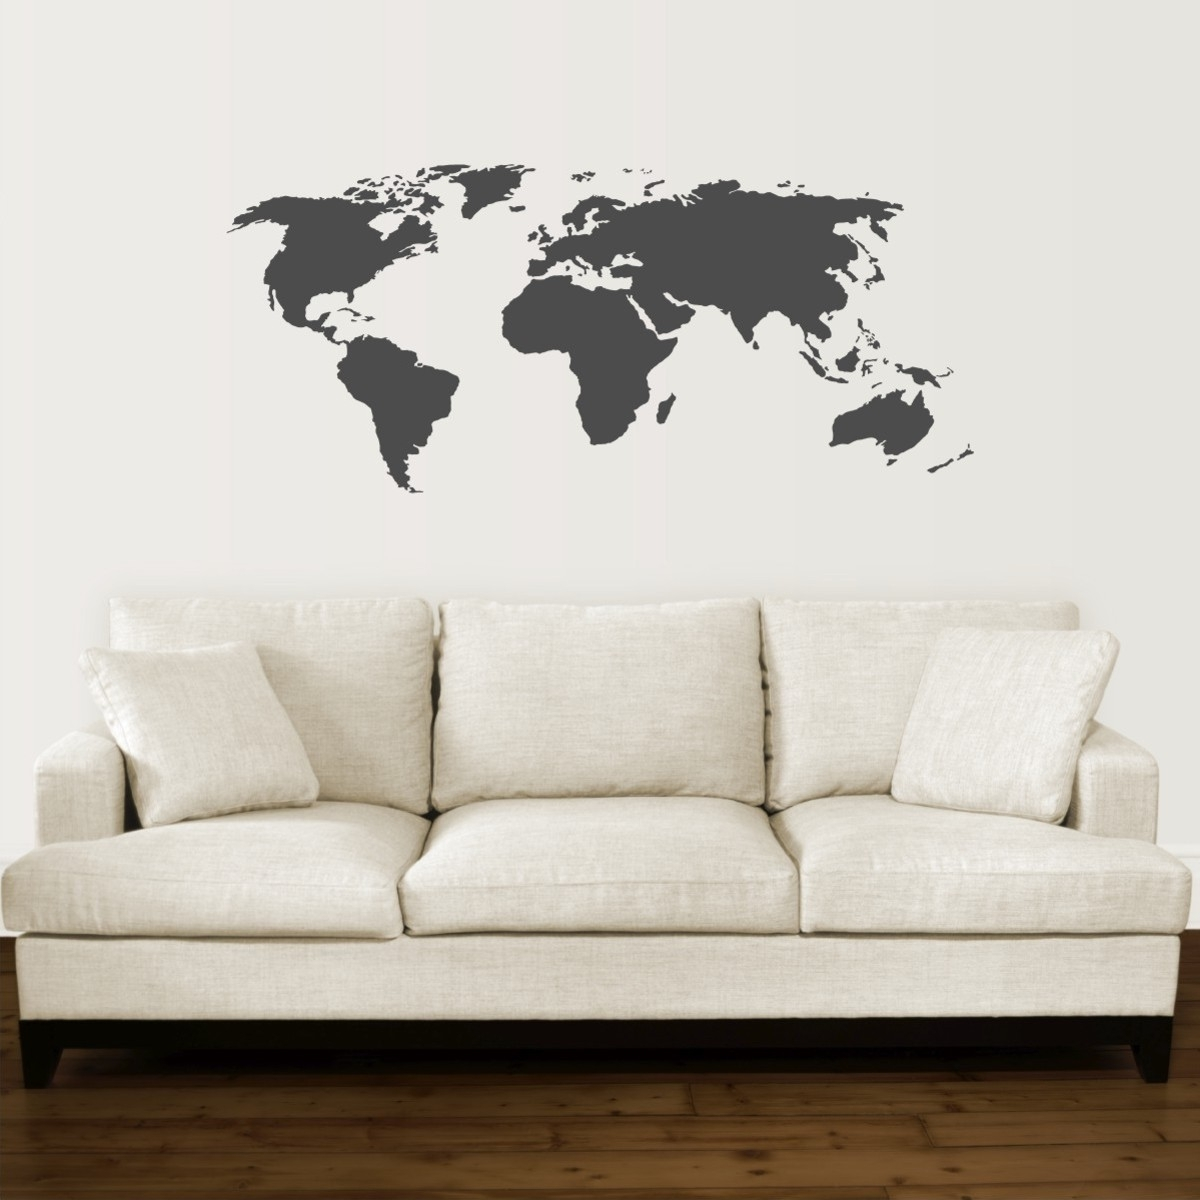 17 Cool Ideas For World Map Wall Art – Live Diy Ideas Within Current World Map For Wall Art (View 5 of 20)